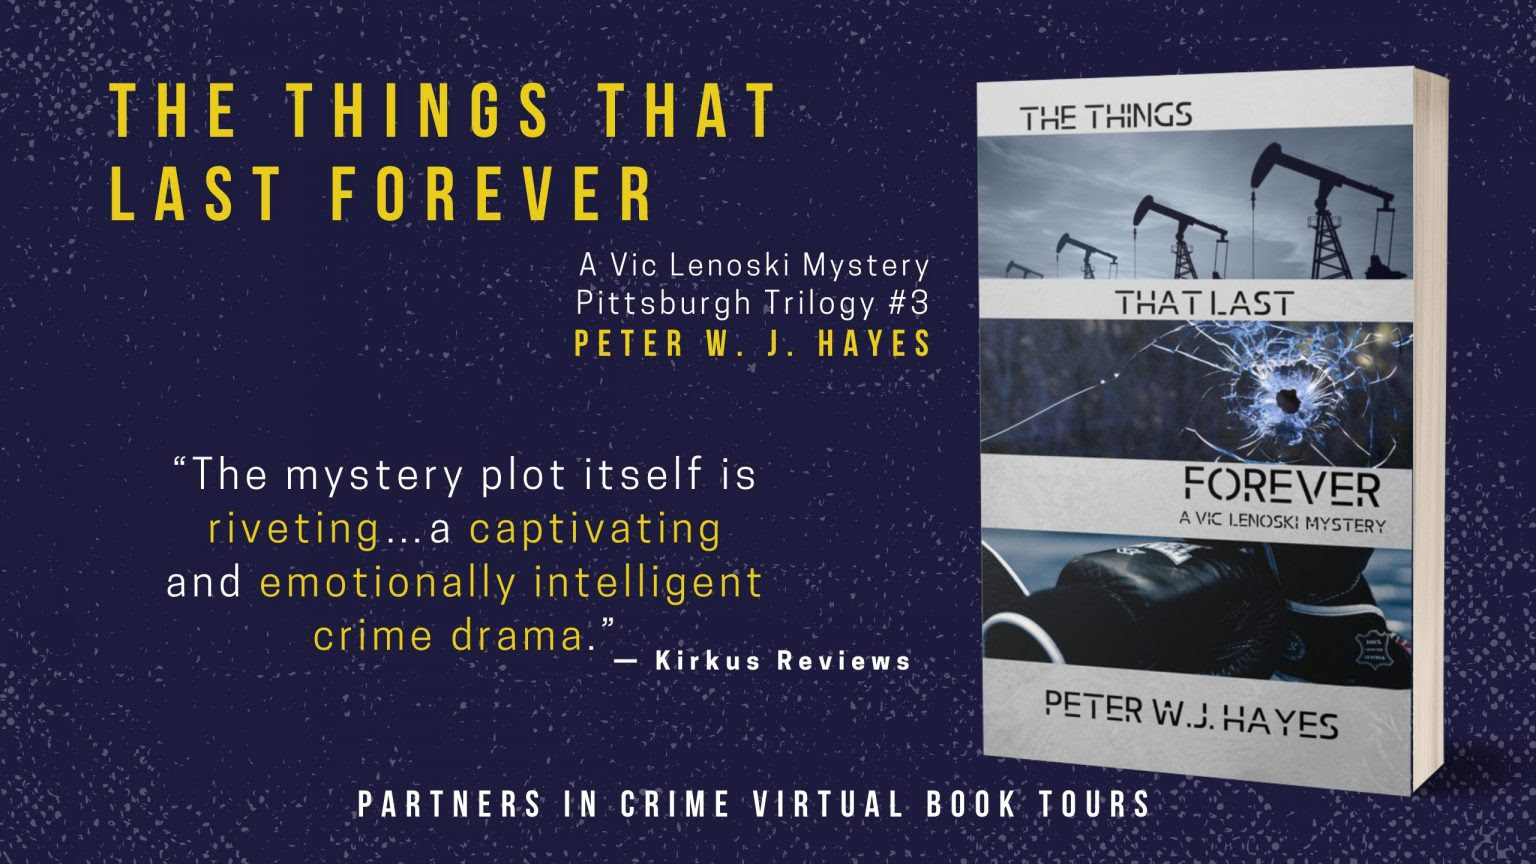 The Things That Last Forever by Peter W.J. Hayes Banner